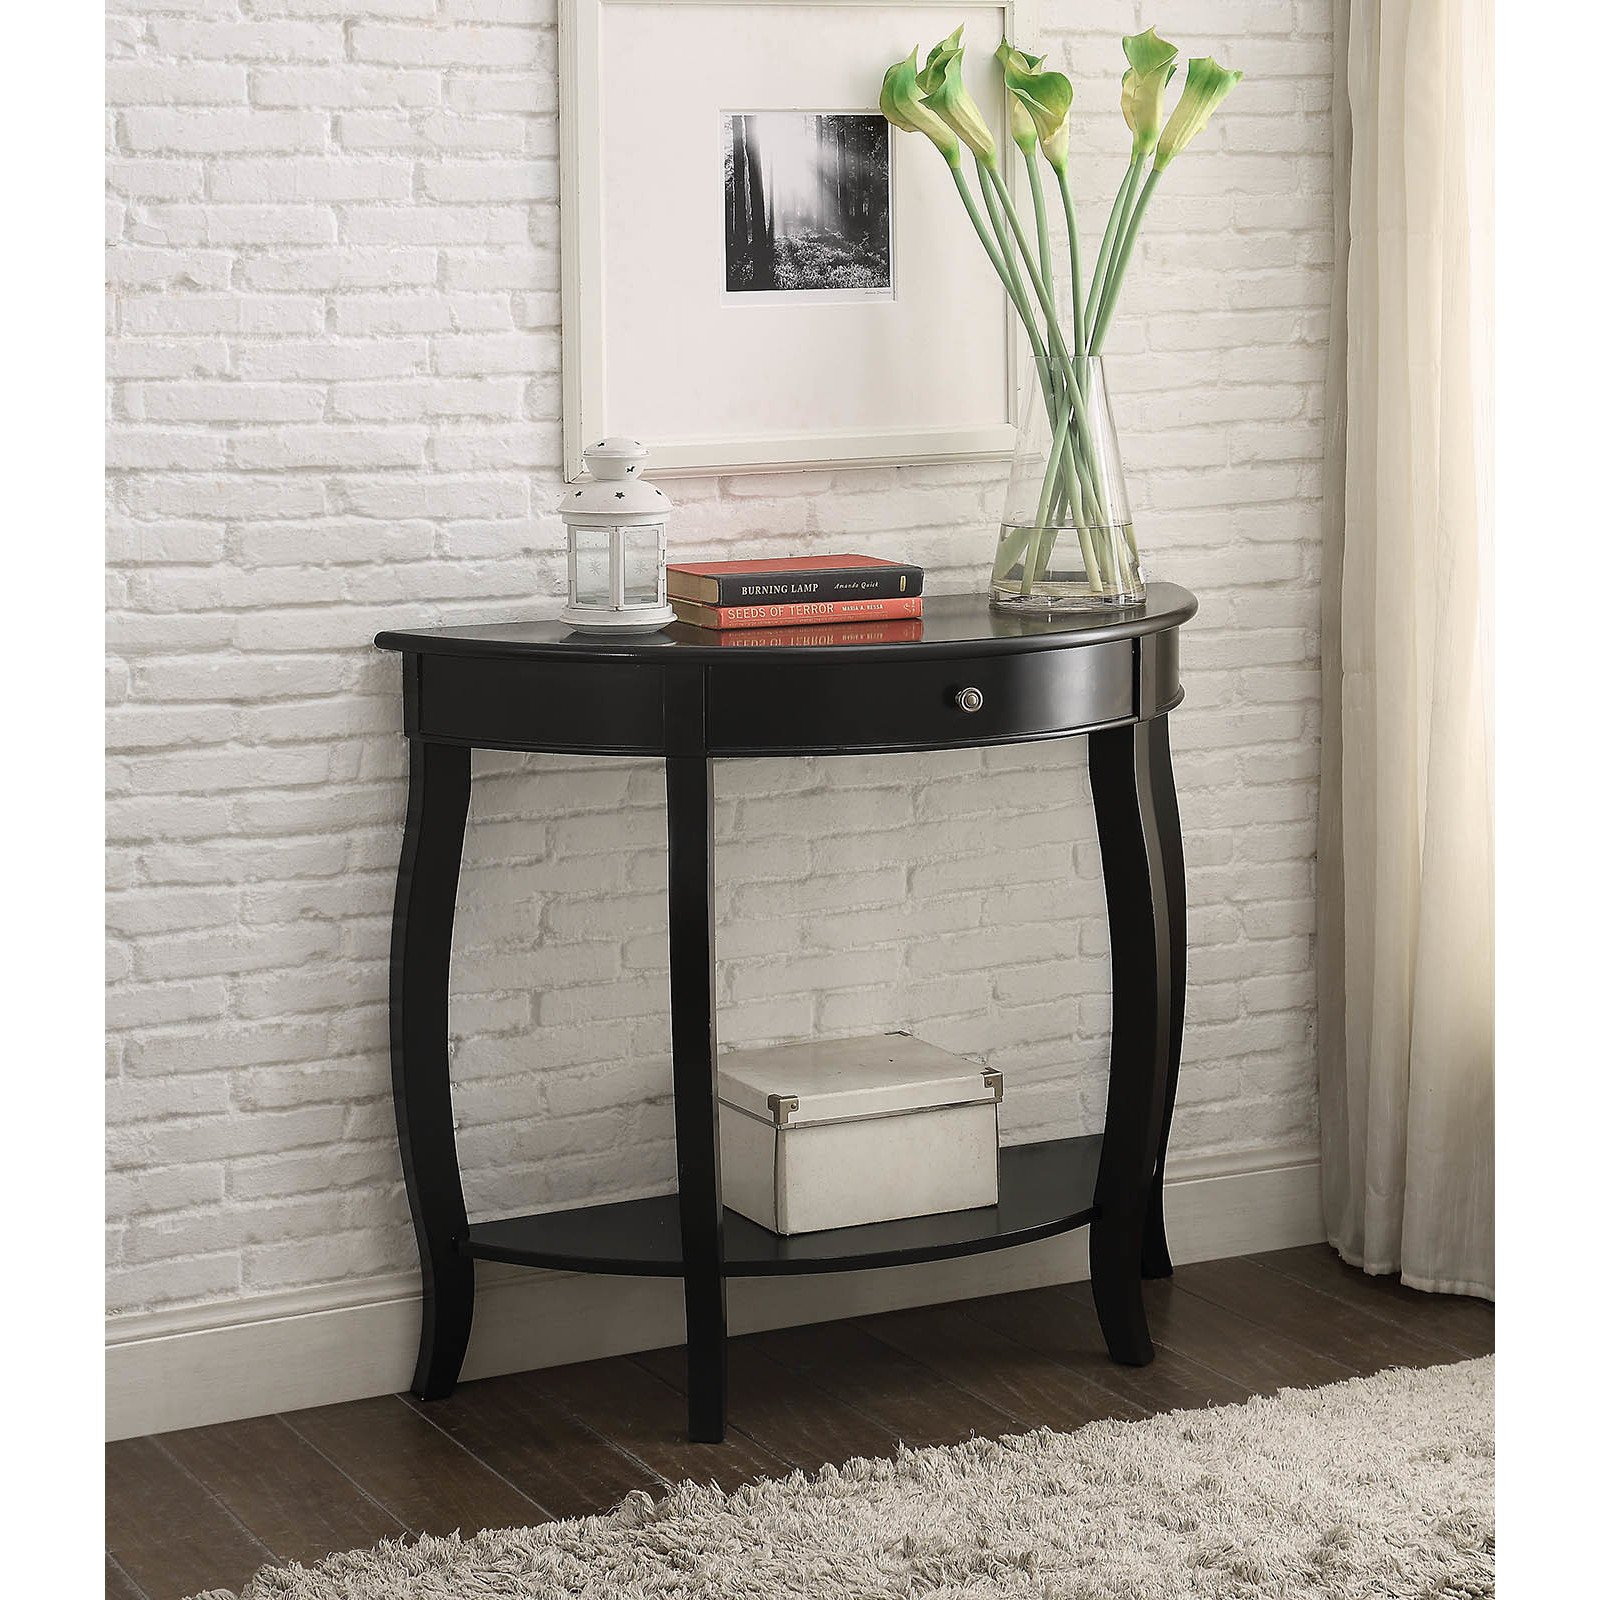 yvonne half moon console table with drawer antique black white accent free shipping today square end kitchen furniture bedside tables kmart telephone seat deck chairs espresso